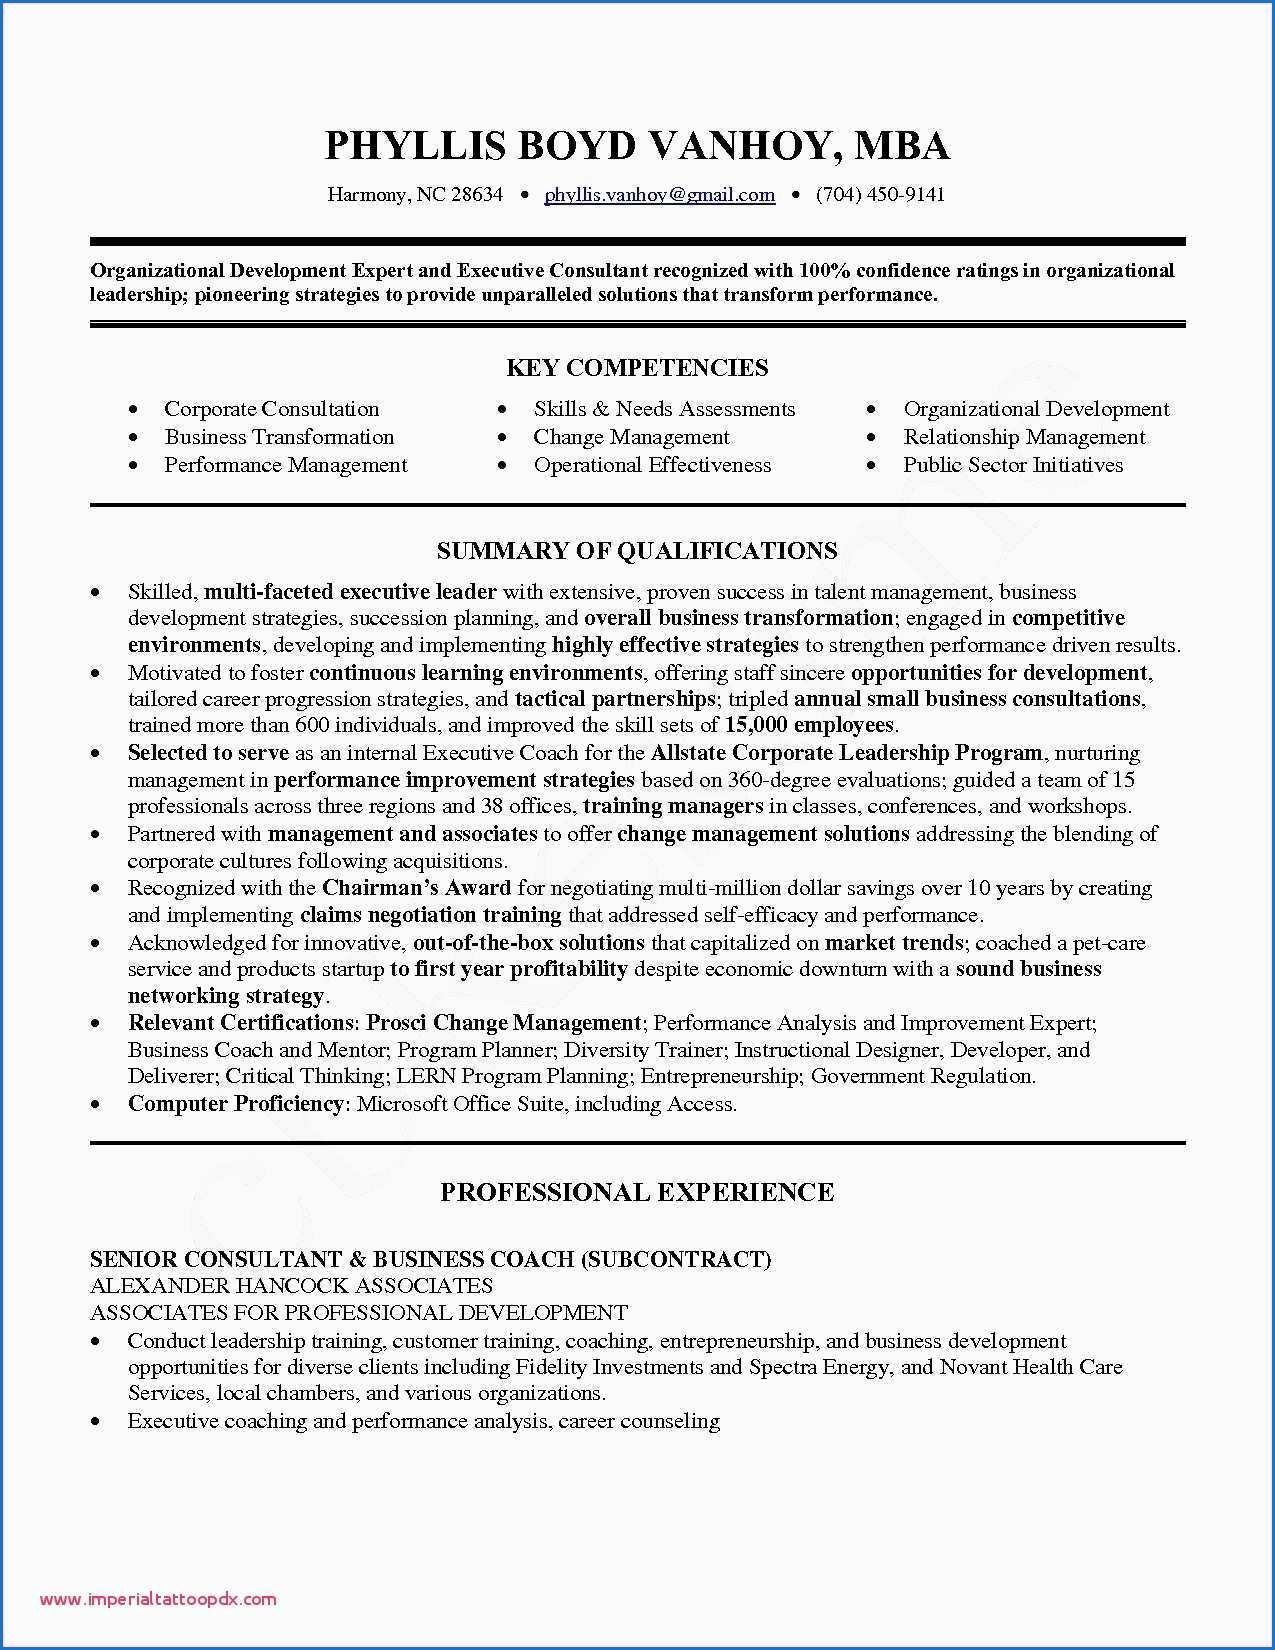 12 Resume Objective Examples For Mba Admission Check More At Https Www Ortelle Org Resume Objective Examples For Mba Admission Tips Blogging Belajar Blogging